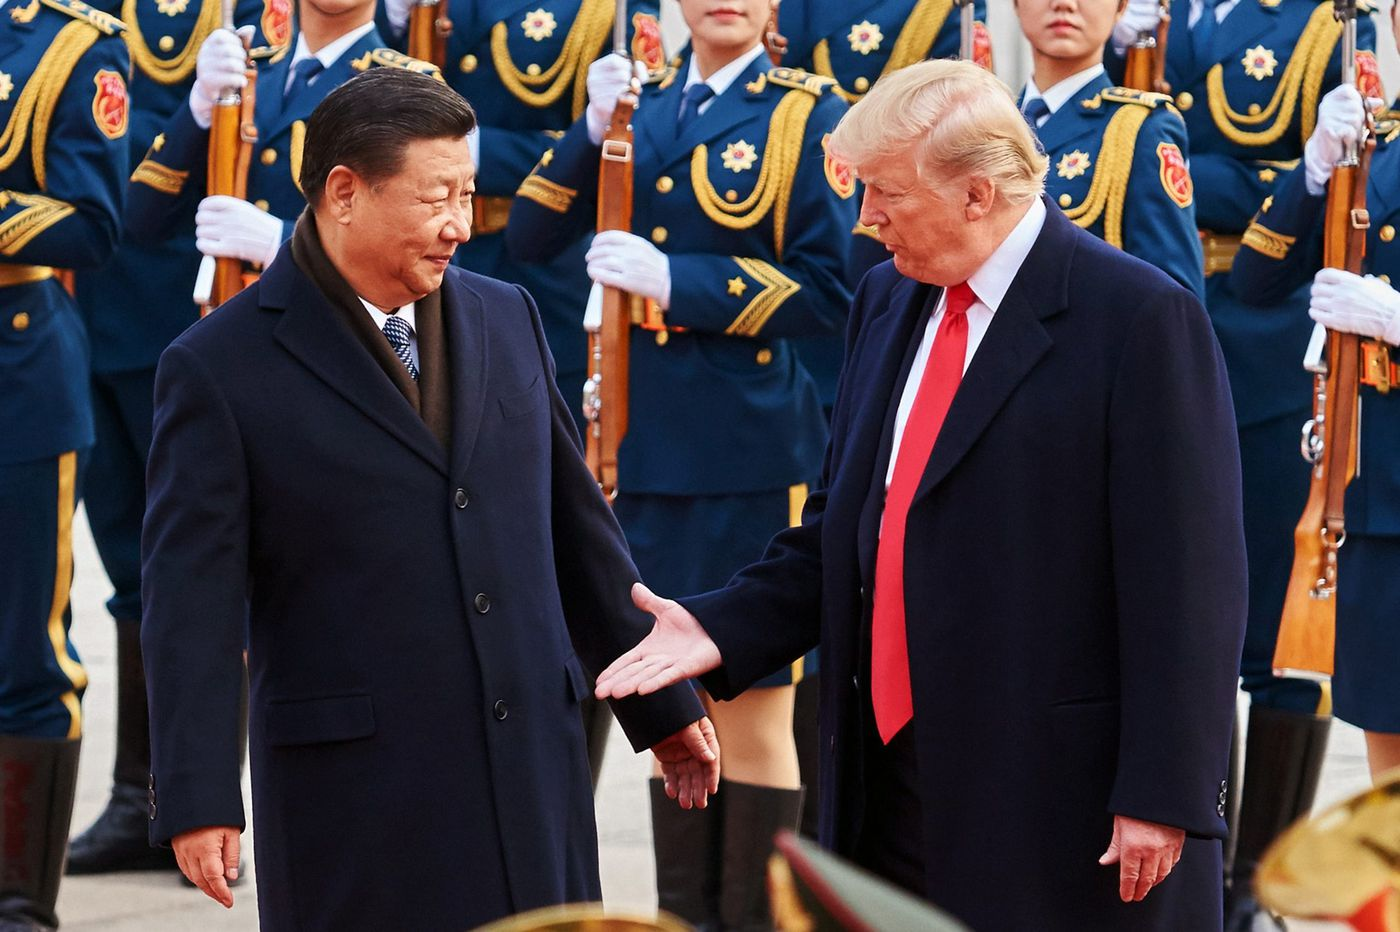 Don't expect miracles when Trump and Xi meet at G-20 | Trudy Rubin